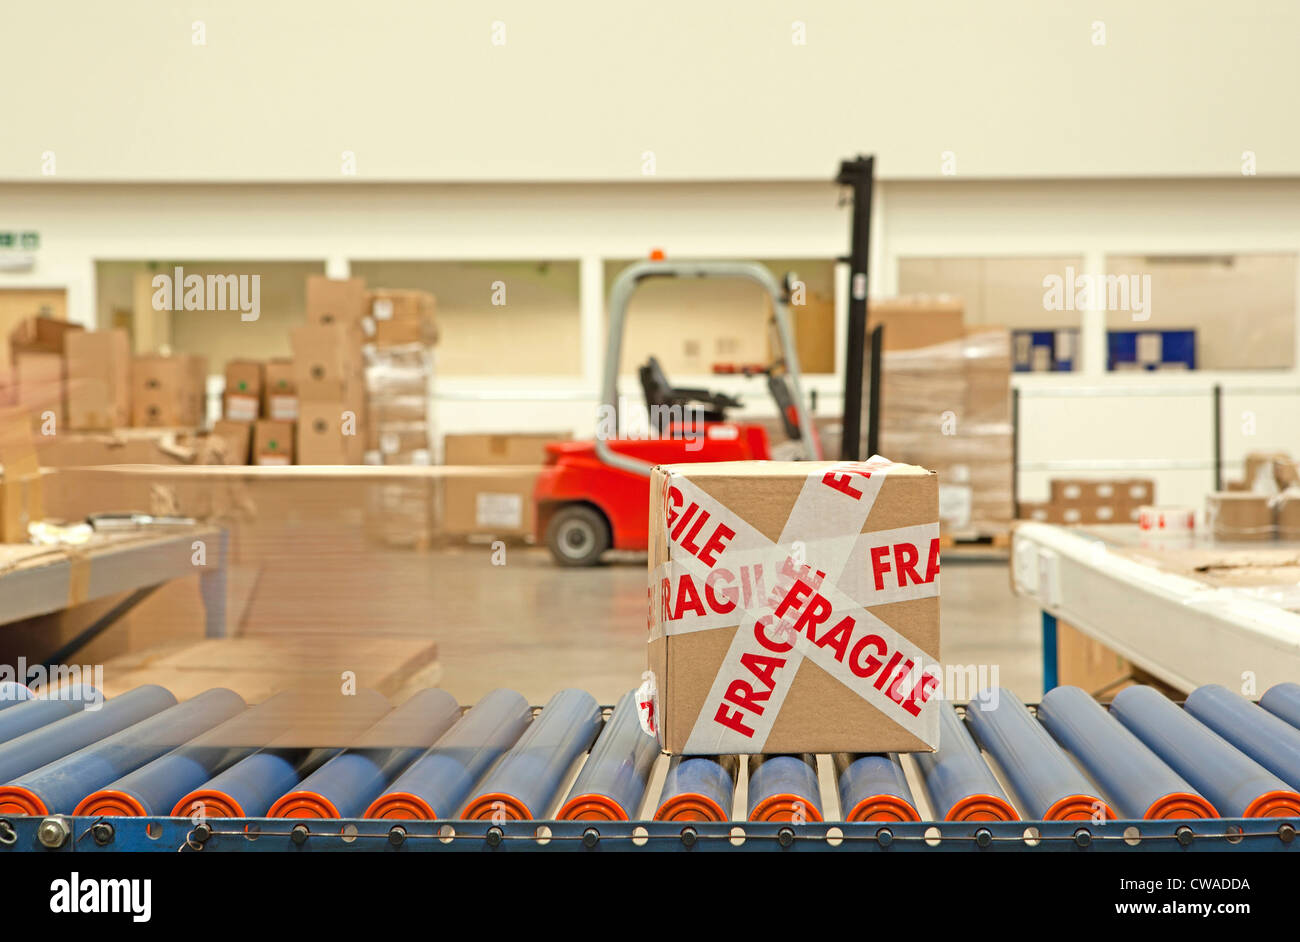 Box with fragile tape on conveyor belt - Stock Image